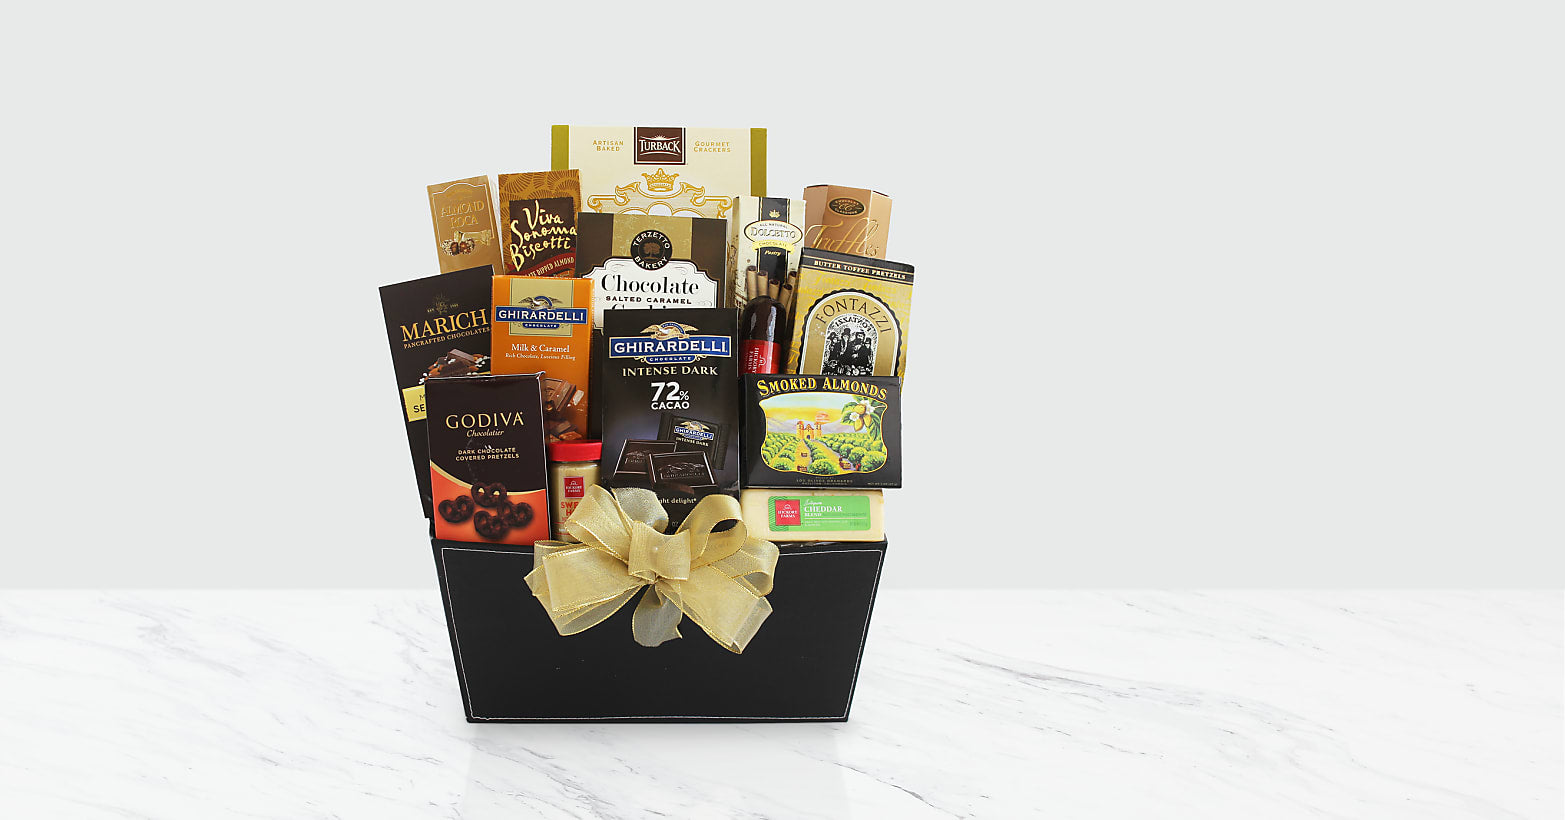 Congratulations Gift Box - Image 1 Of 3